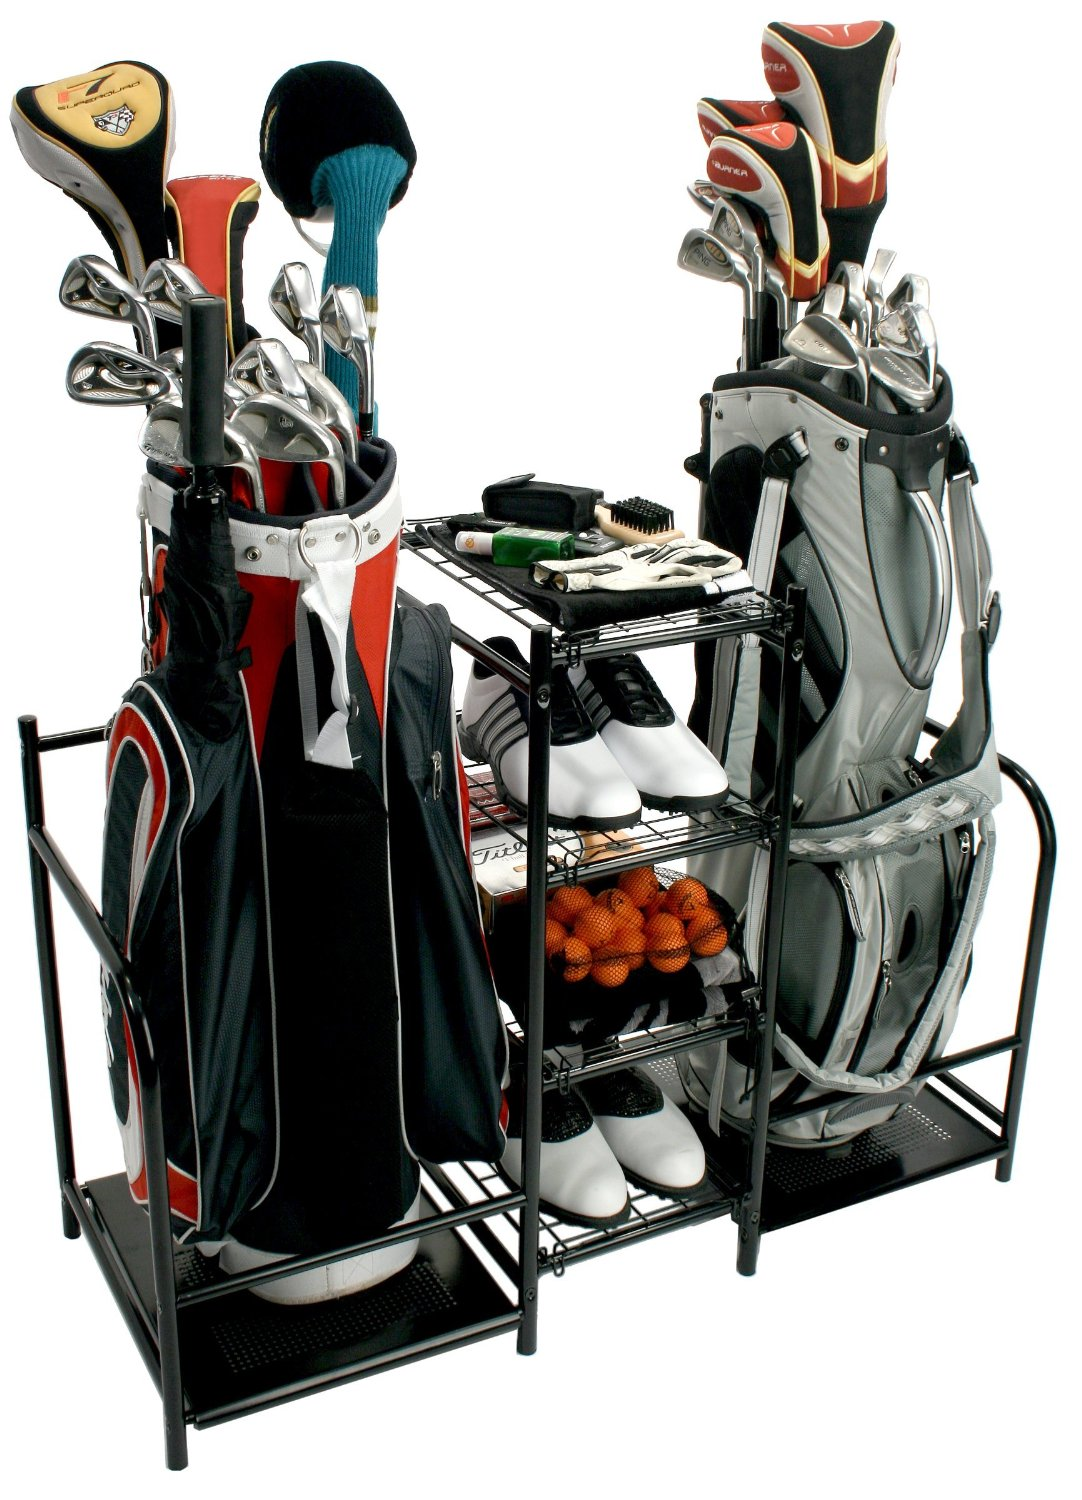 Proactive Sports Dual Golf Bag Amp Equipment Storage Organizers